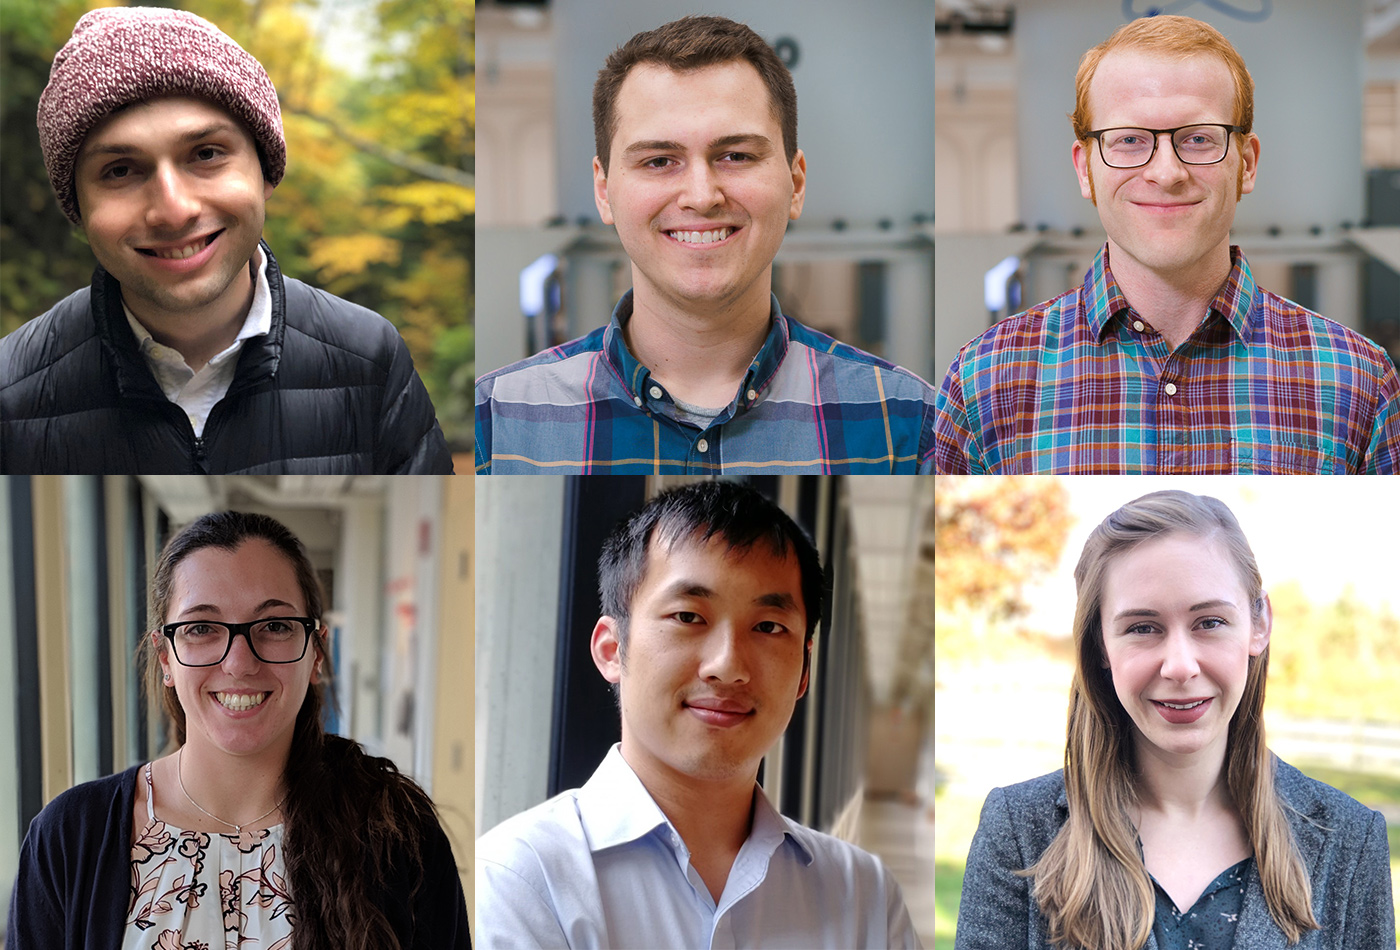 Tiled image of the six winners of the mentorship spotlight award.